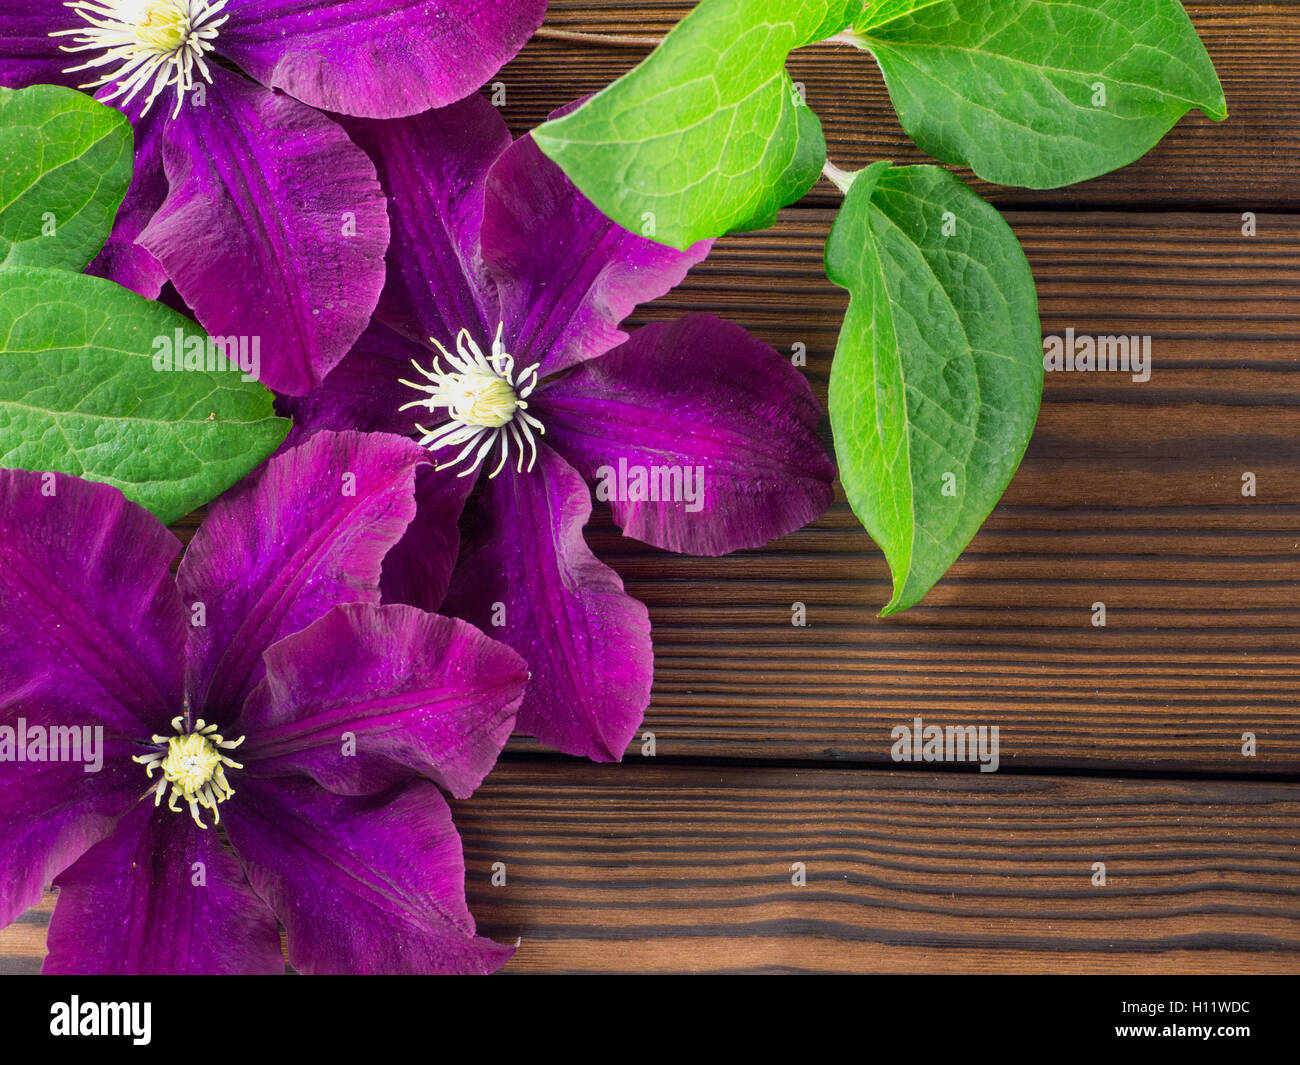 Three dark purple clematis flowers with leaves on the textured wooden planks - Stock Image